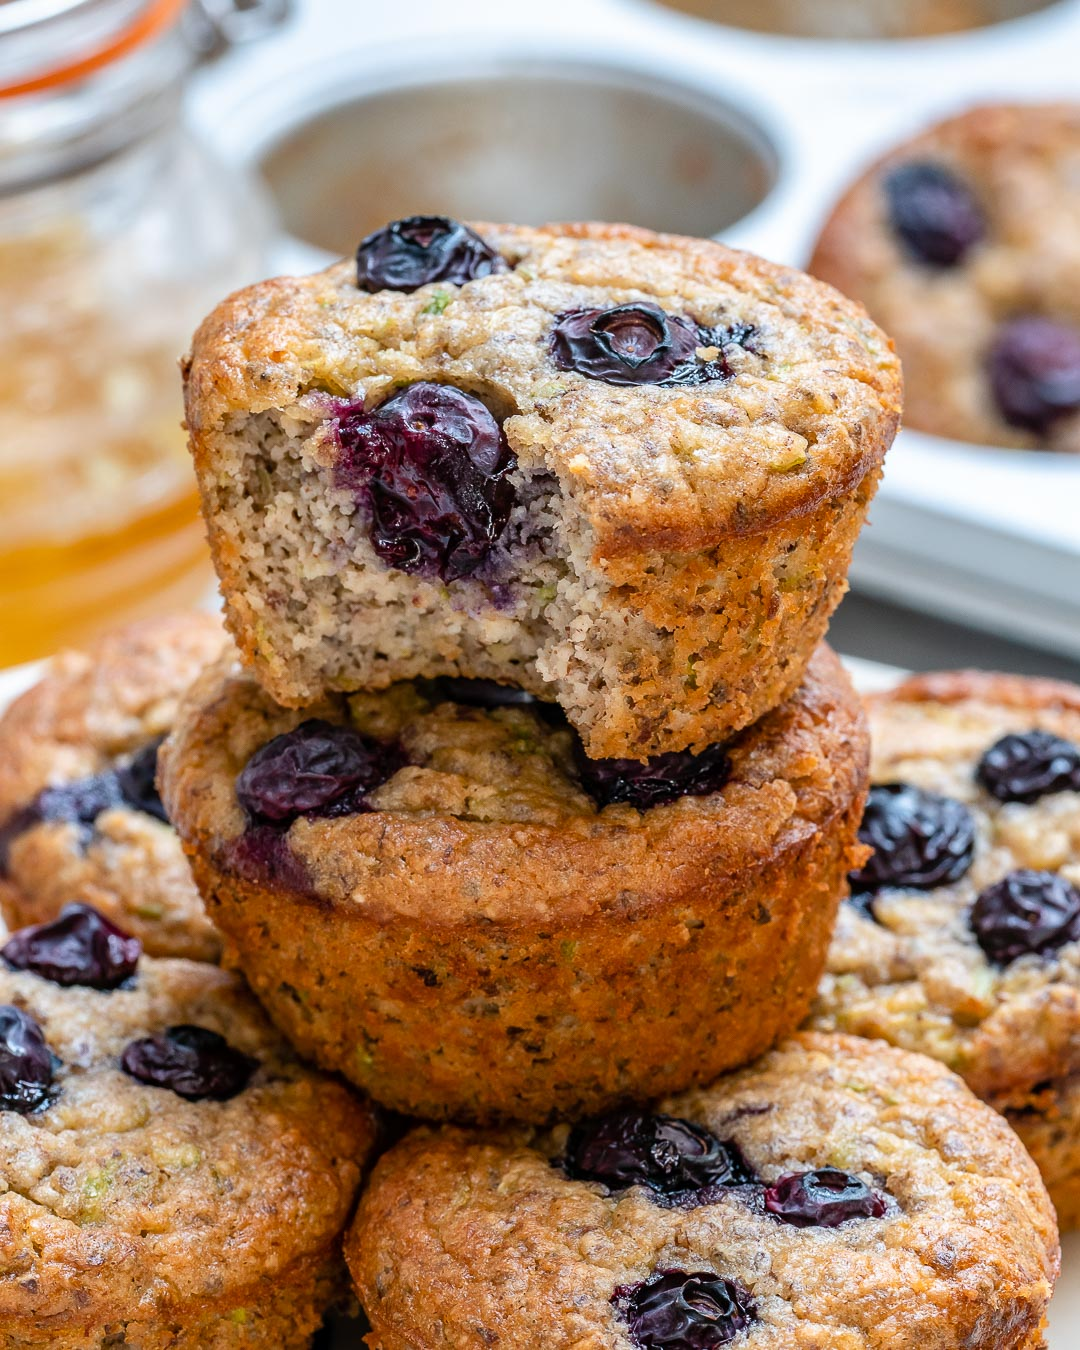 These Healthy Blueberry Zucchini Breakfast Muffins are Loaded with Nutrients!